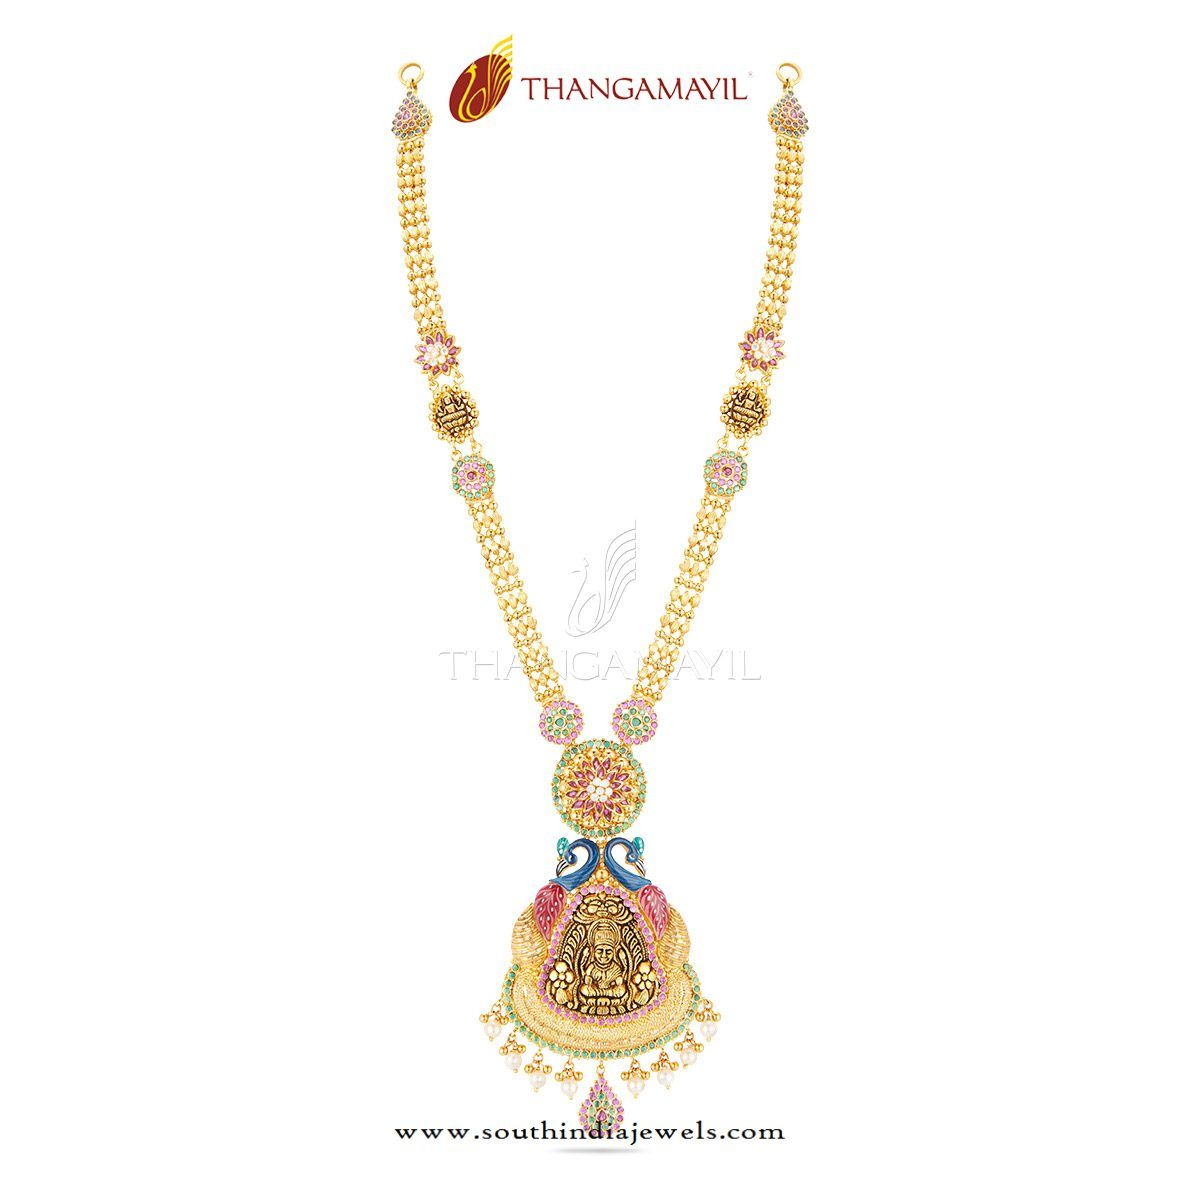 New Gold Long Necklace from Thangamayil Jewellery | Necklace ...